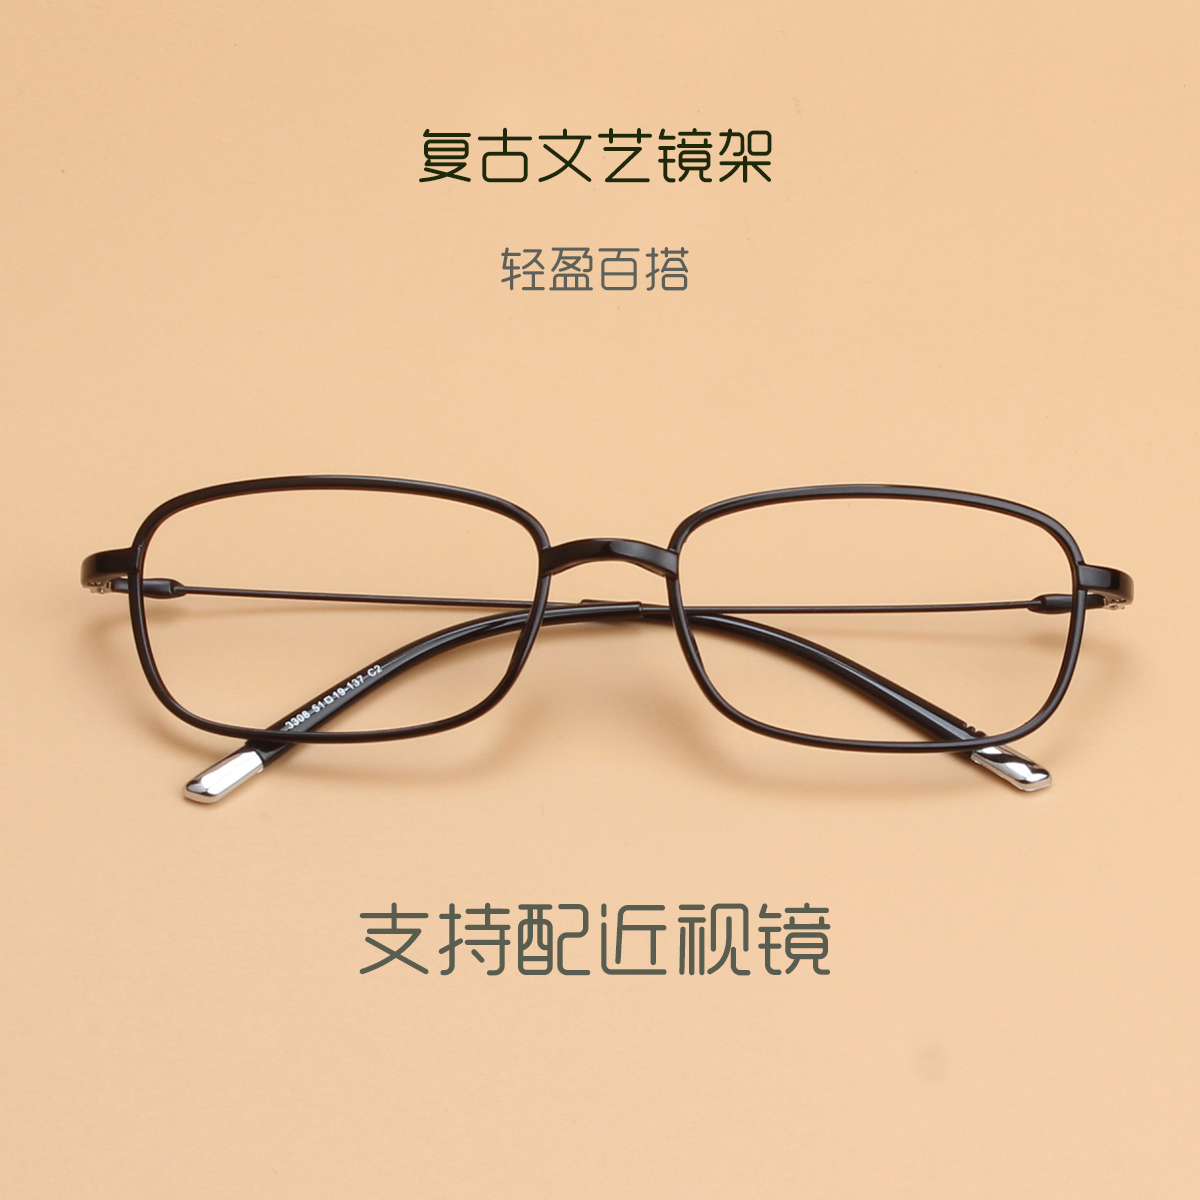 9a98cea3a8 Get Quotations · Ultralight tr90 glasses frame female models korean tidal  box 1 theatrical spectacle frames male eye box